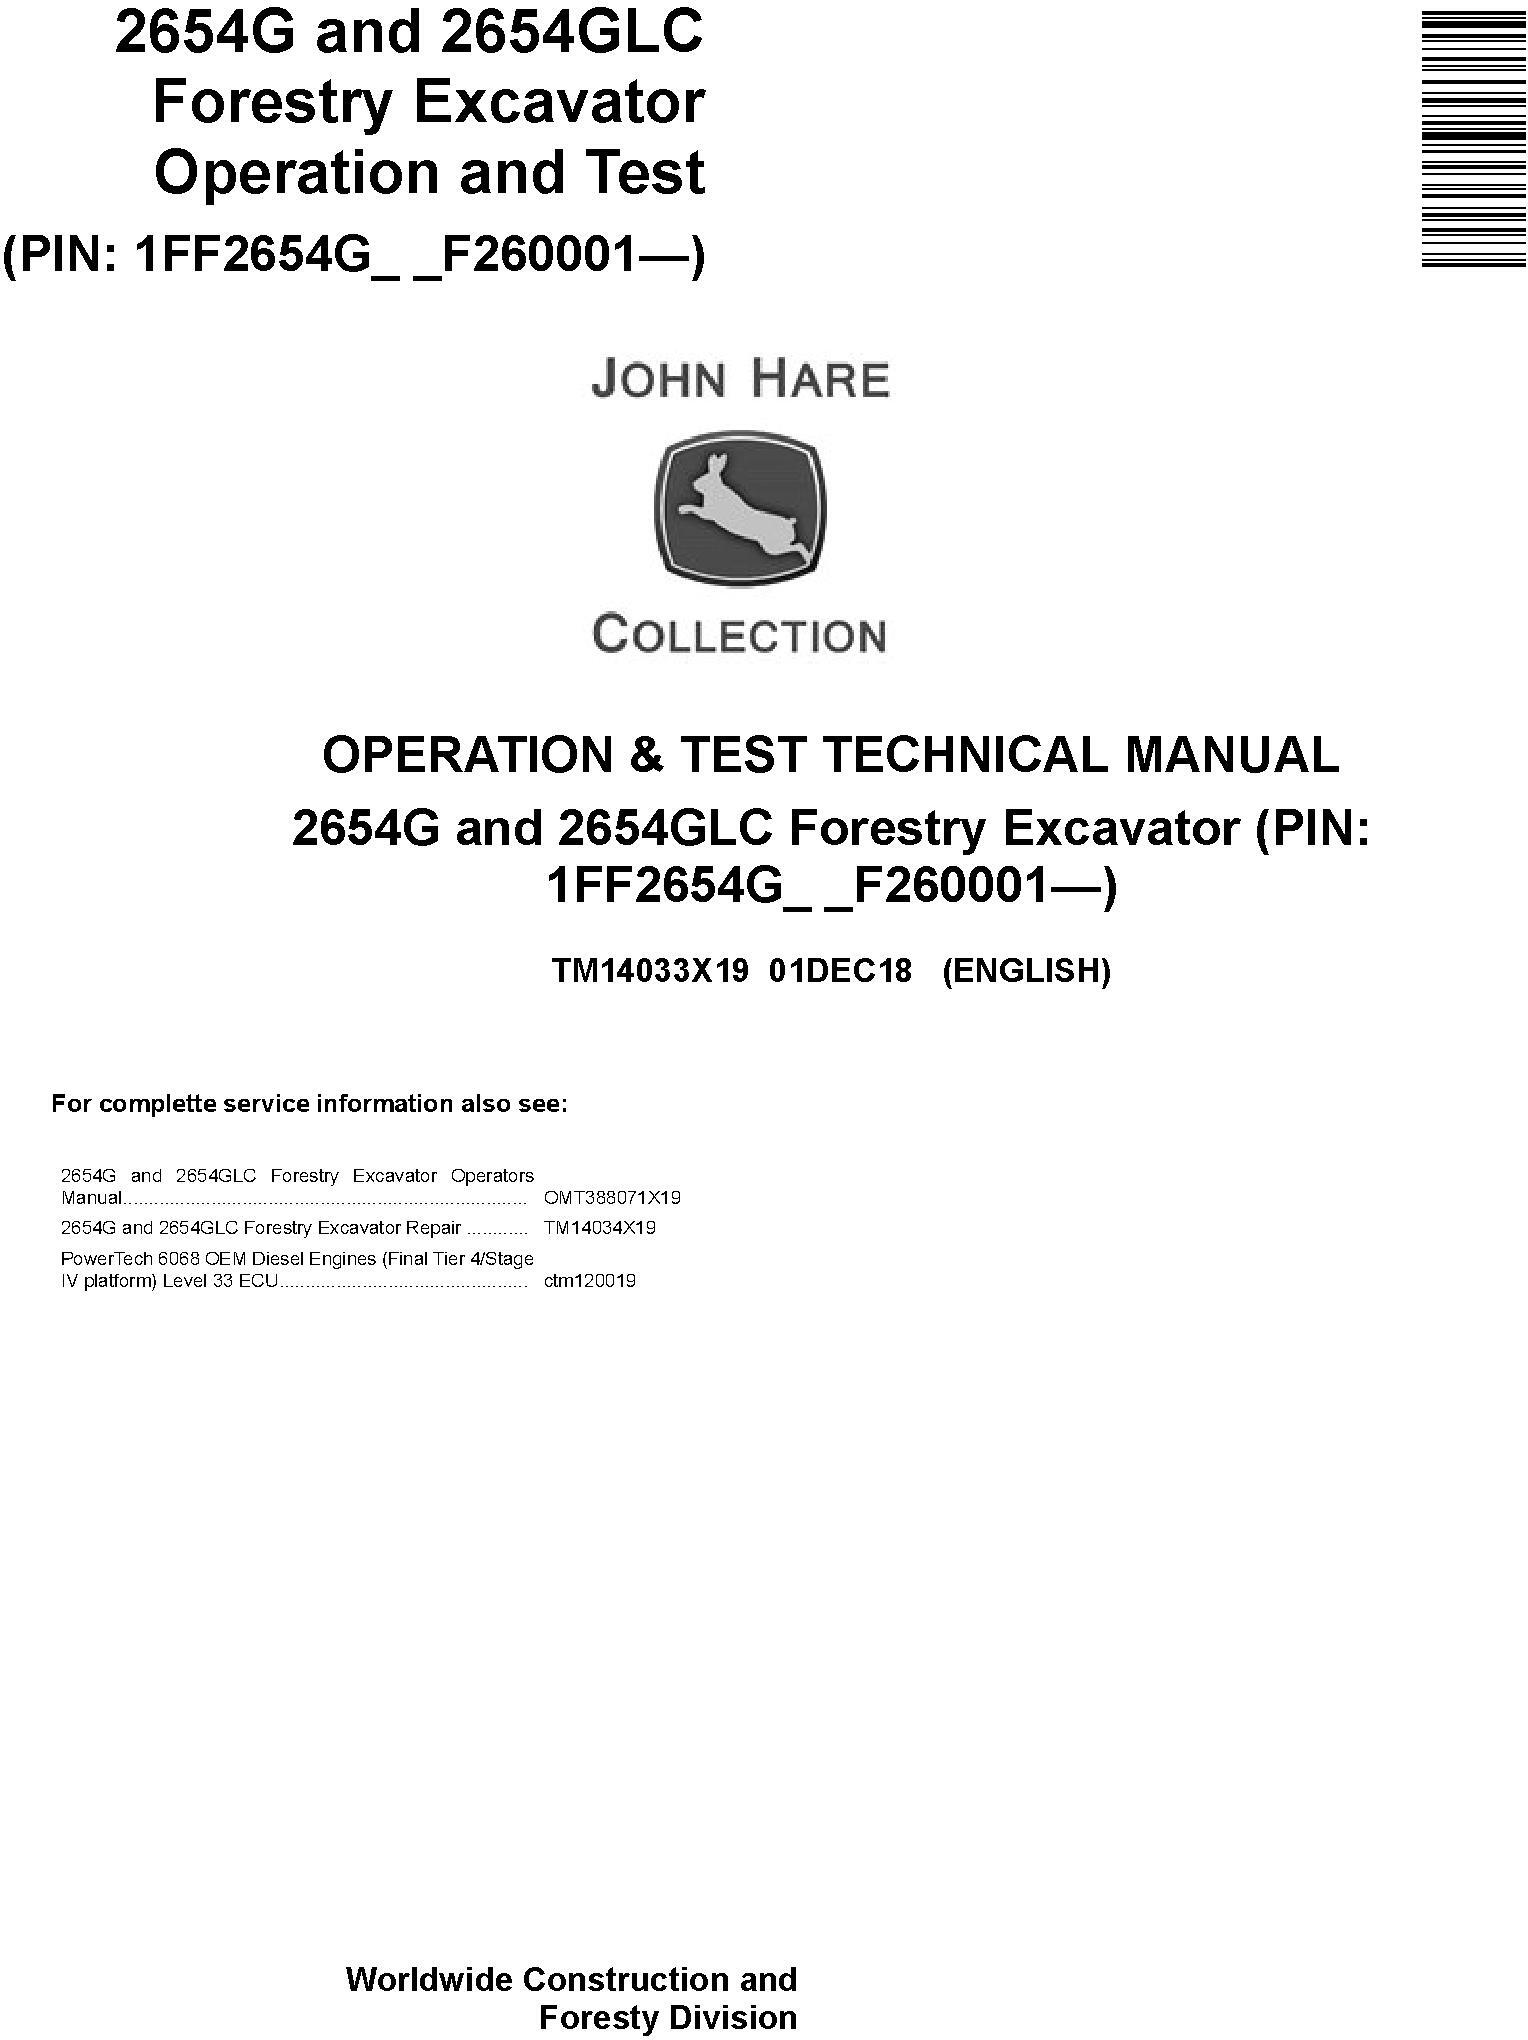 John Deere 2654G, 2654GLC (SN. F260001-) Forestry Excavator Diagnostic Technical Manual (TM14033X19) - 19202